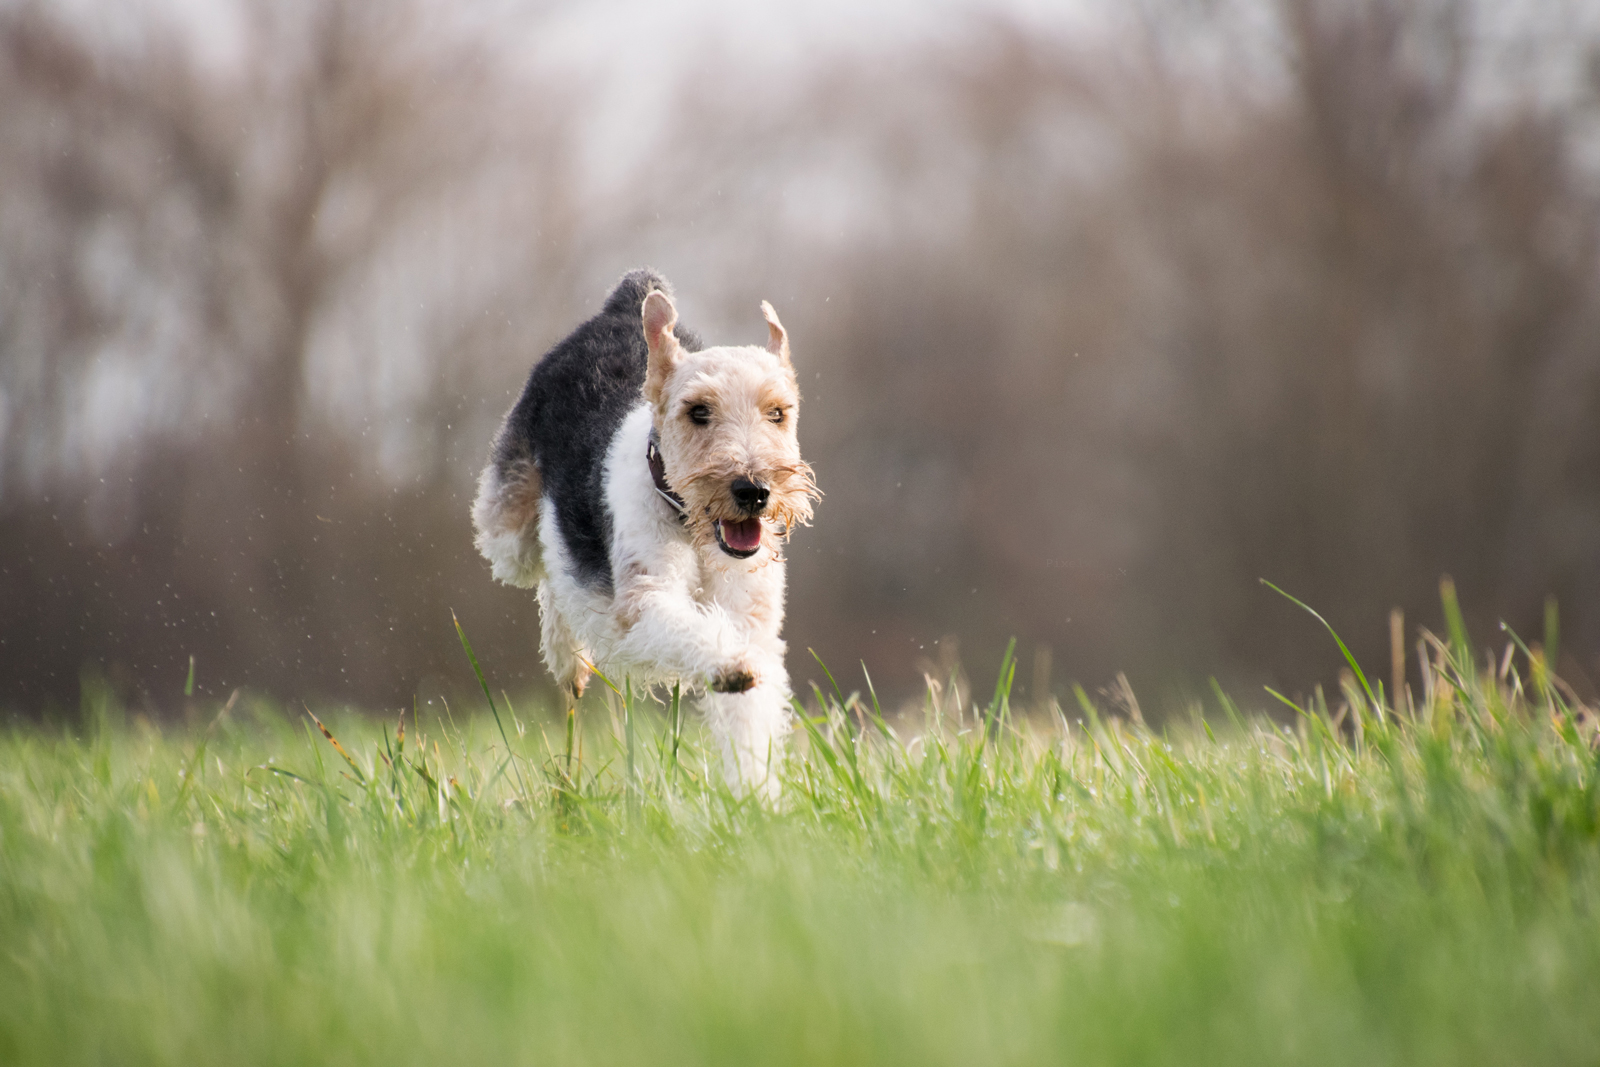 A dog running through a field